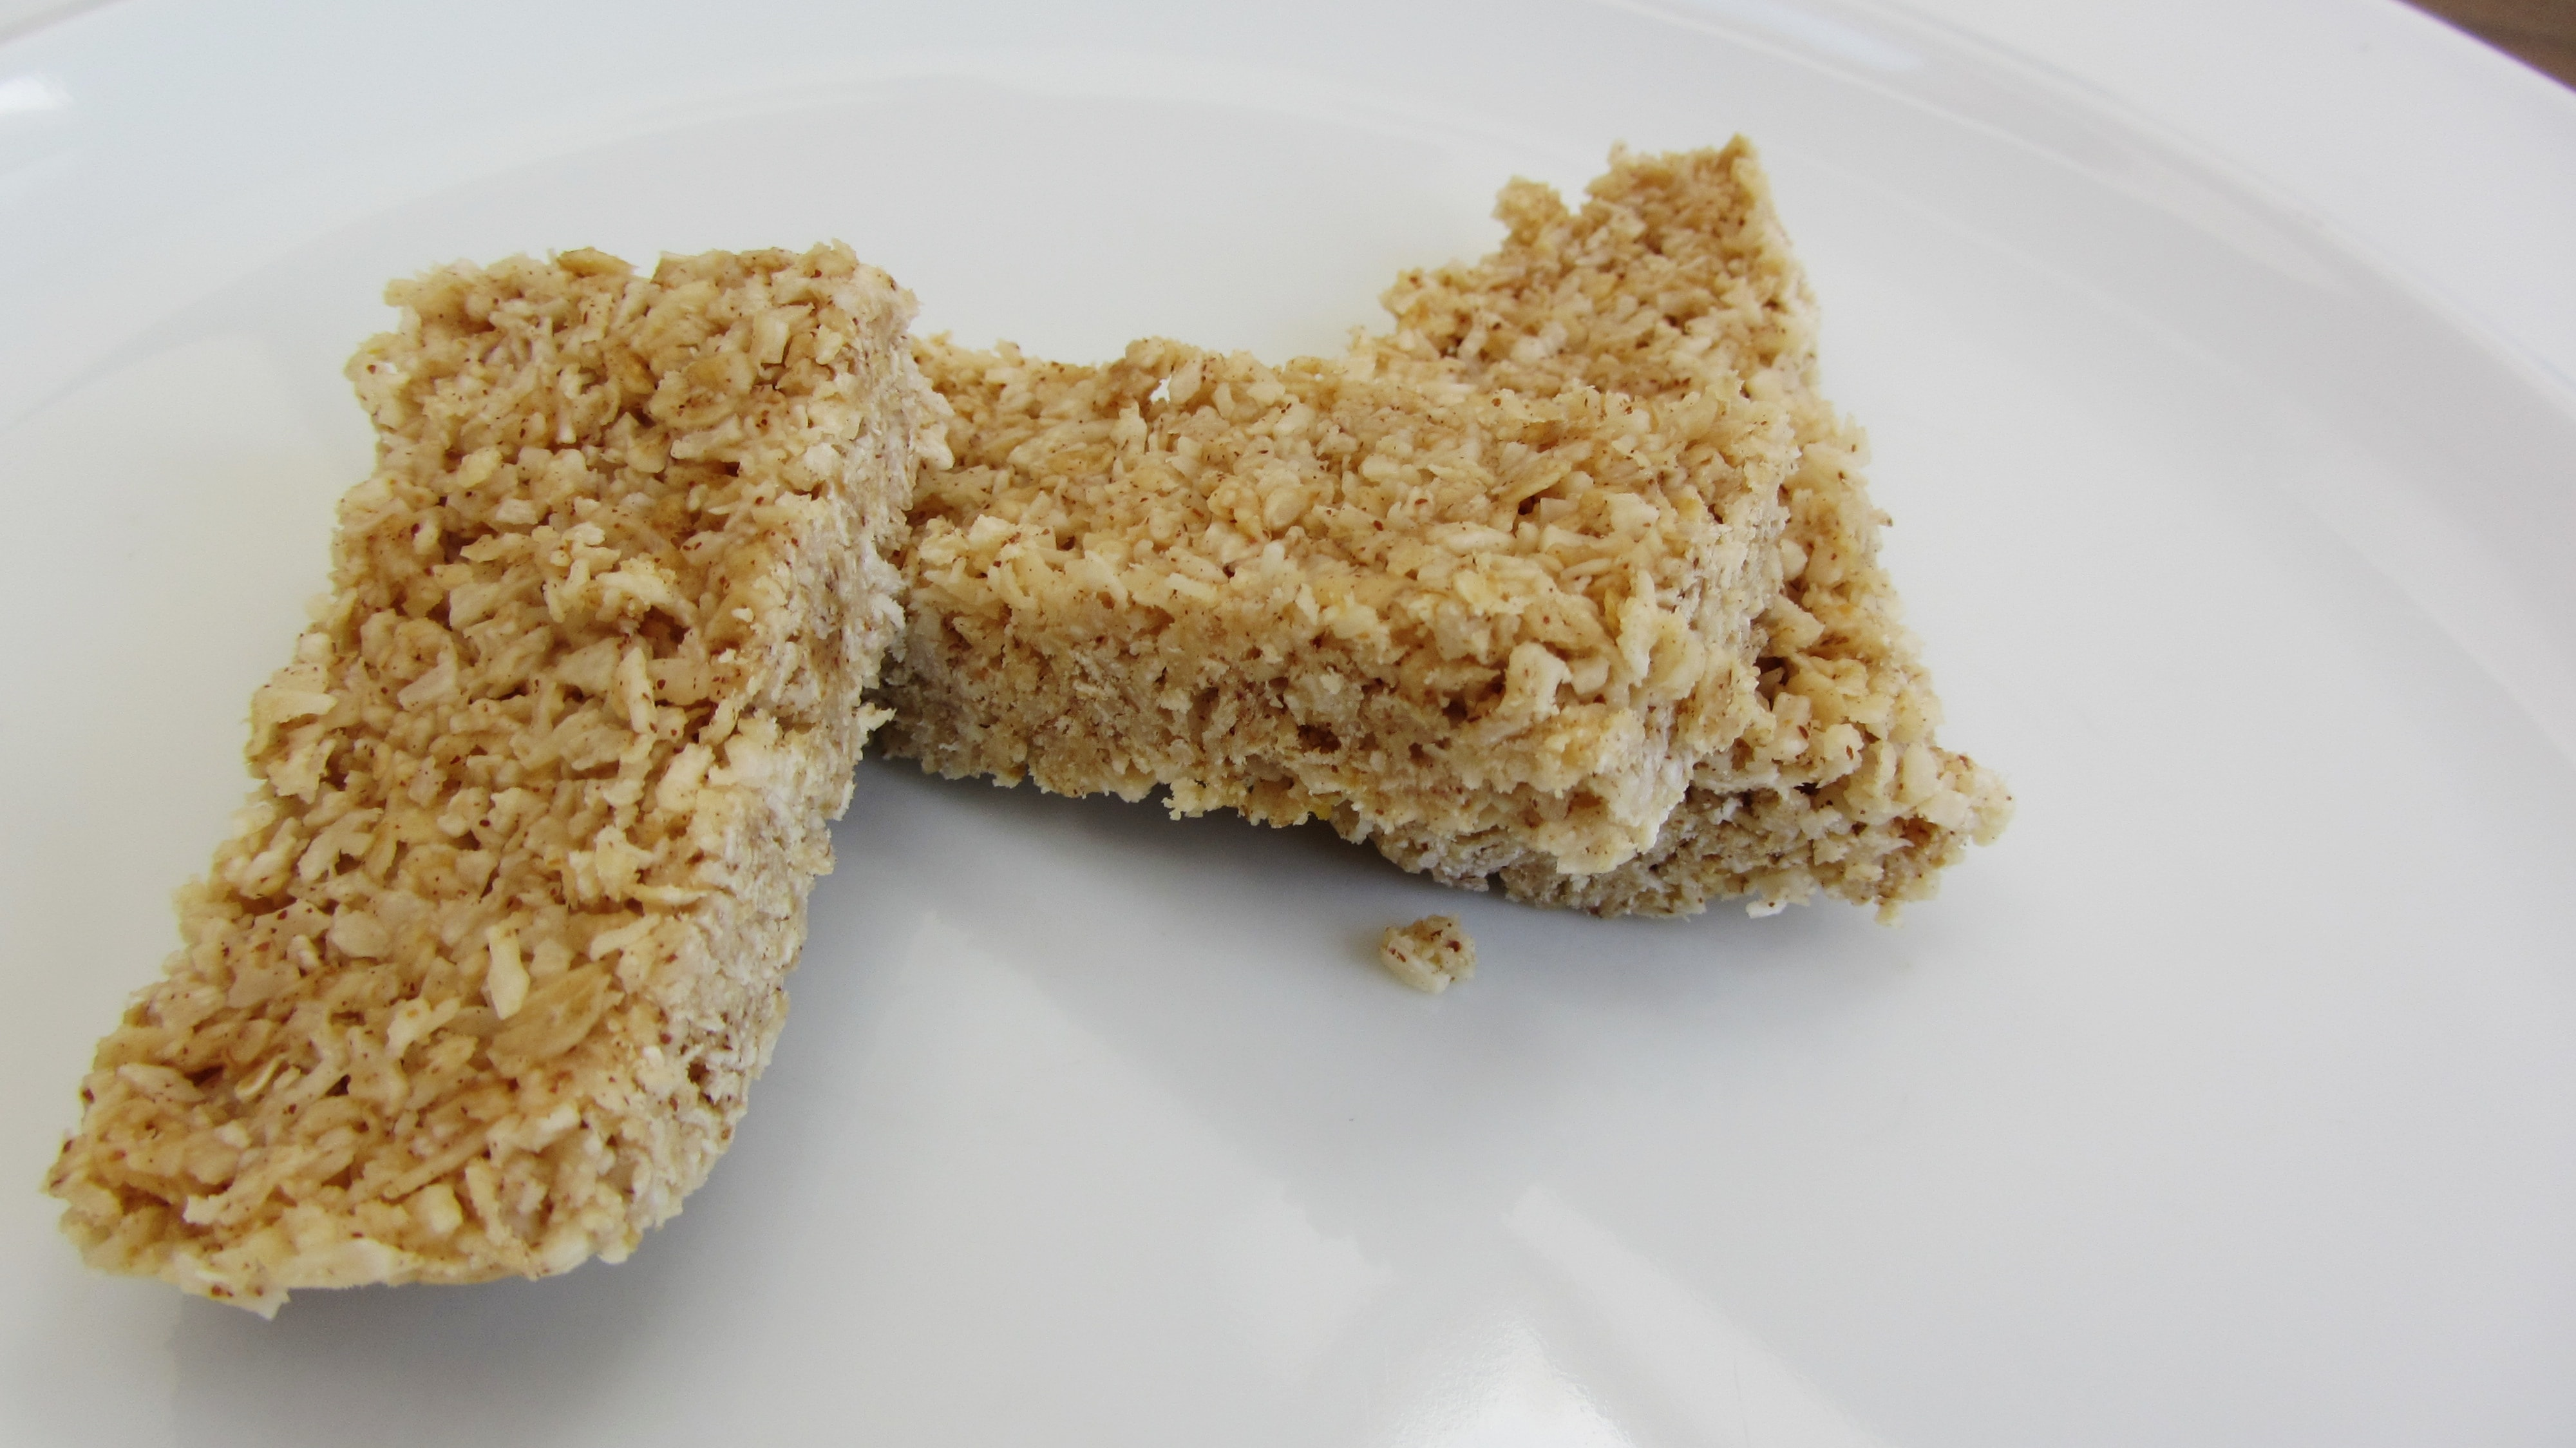 Coconut and peanut butter cereal bars